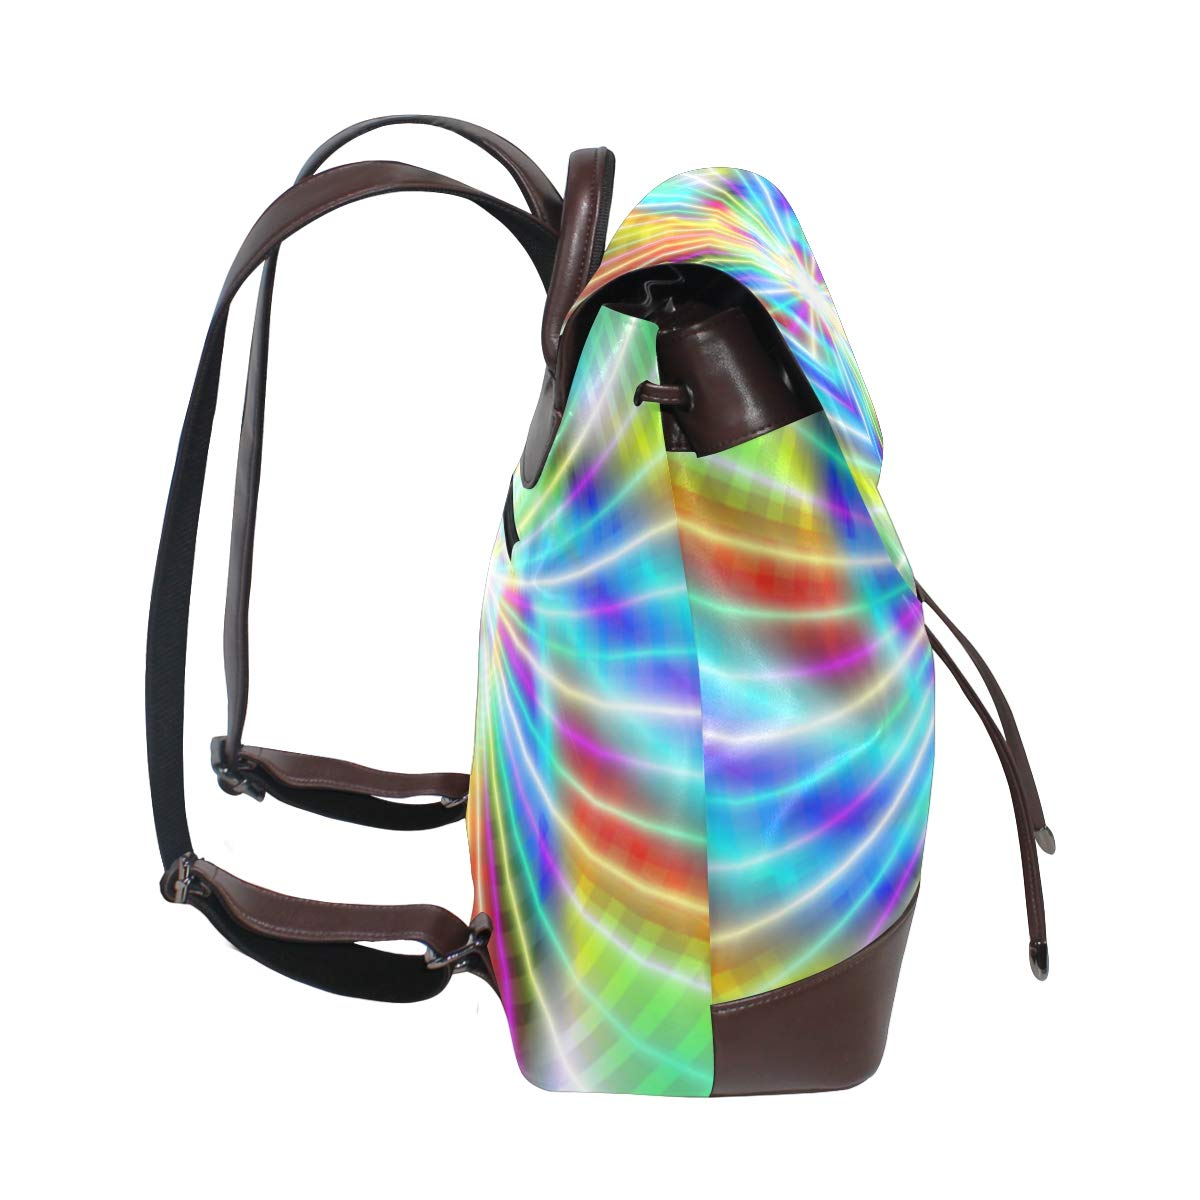 Unisex PU Leather Backpack Colorful Laser Rays Print Womens Casual Daypack Mens Travel Sports Bag Boys College Bookbag